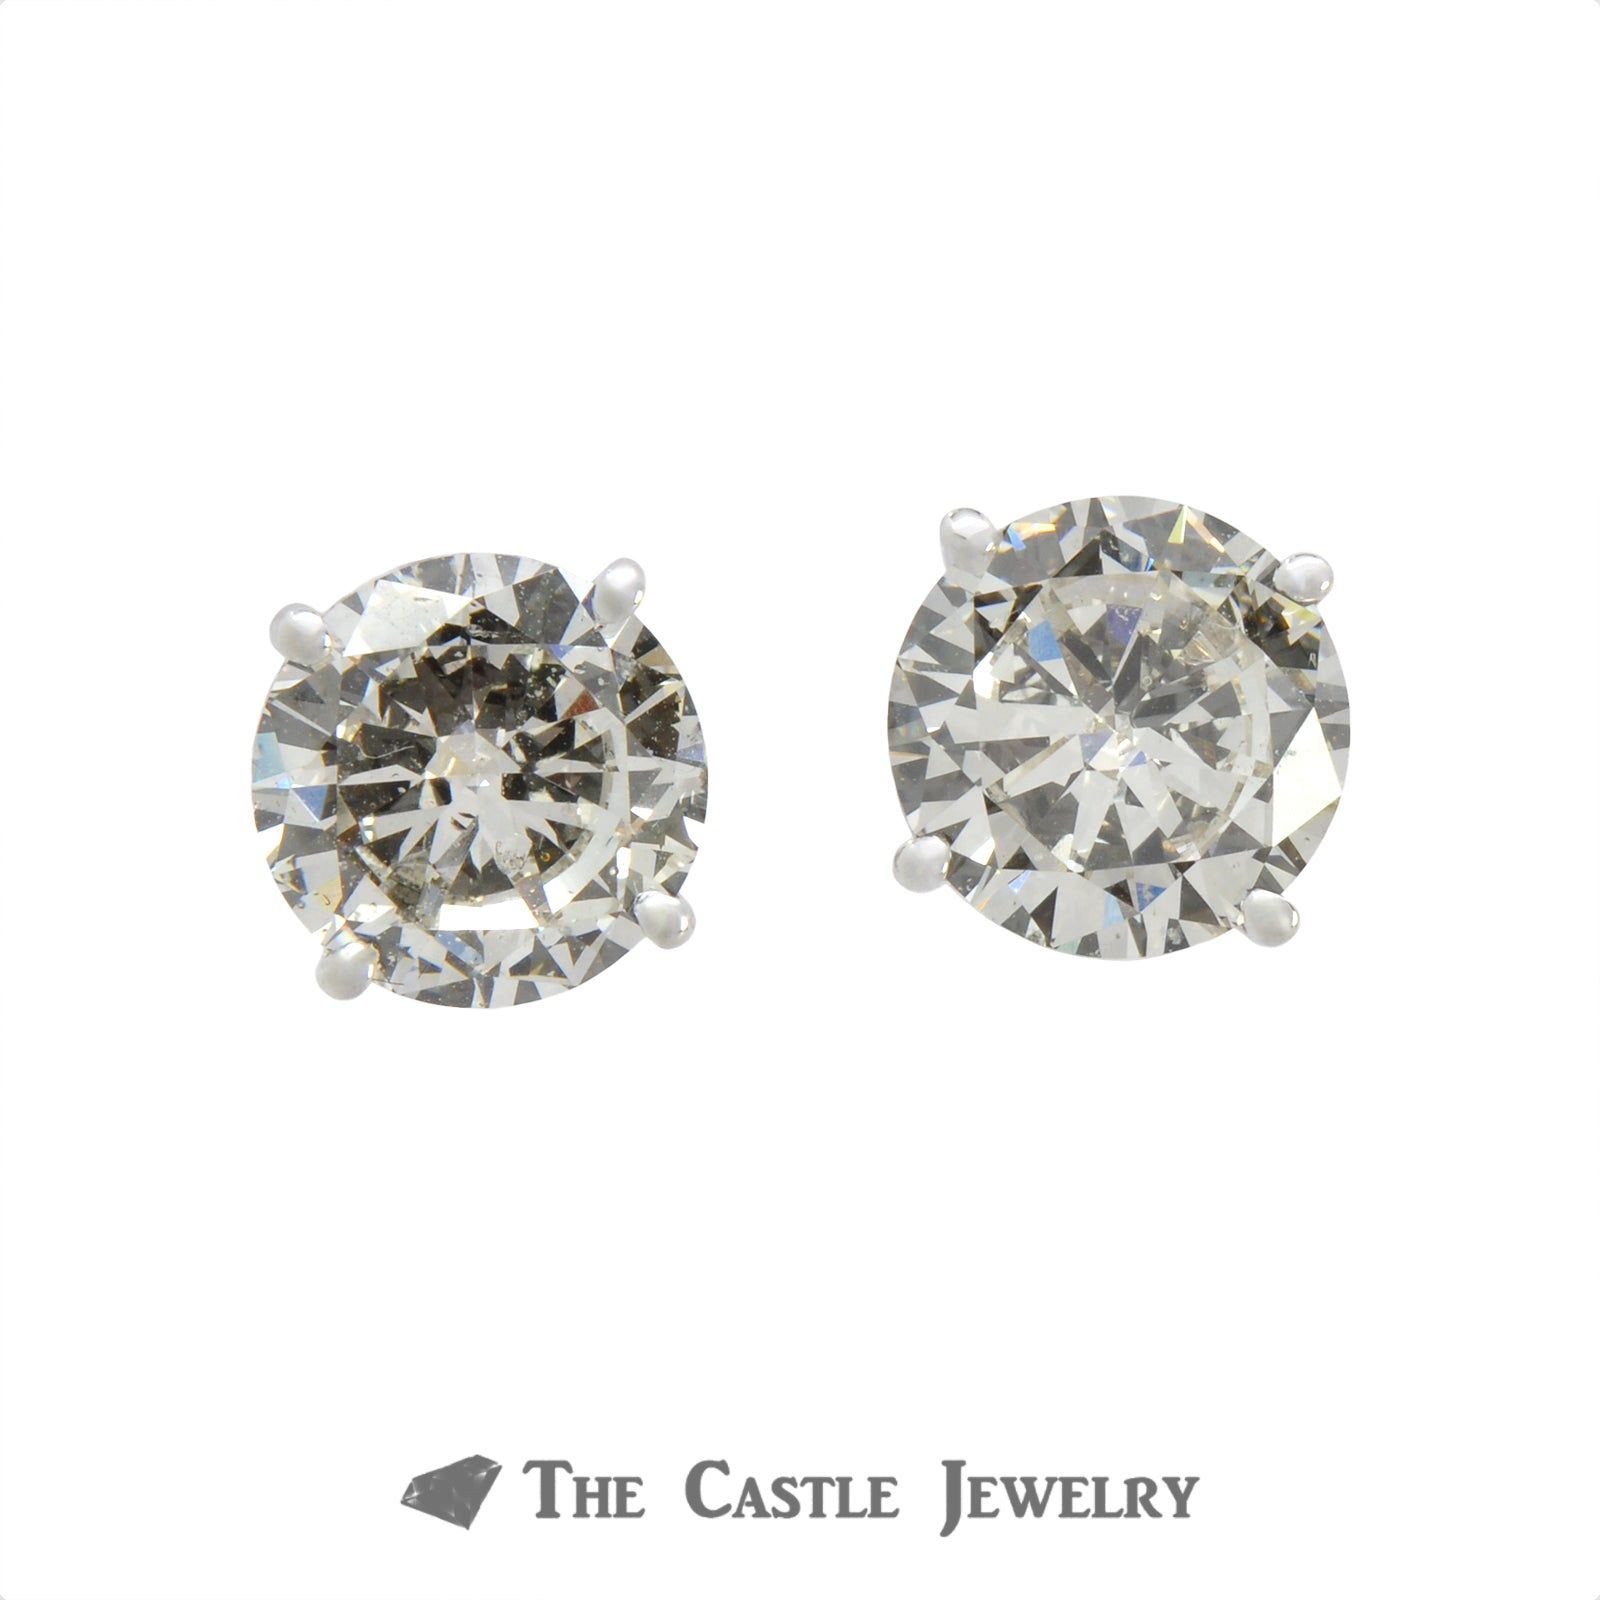 Lab Grown Round Brilliant Cut Diamond Stud Earrings 4.02 cttw In 14KT White Gold